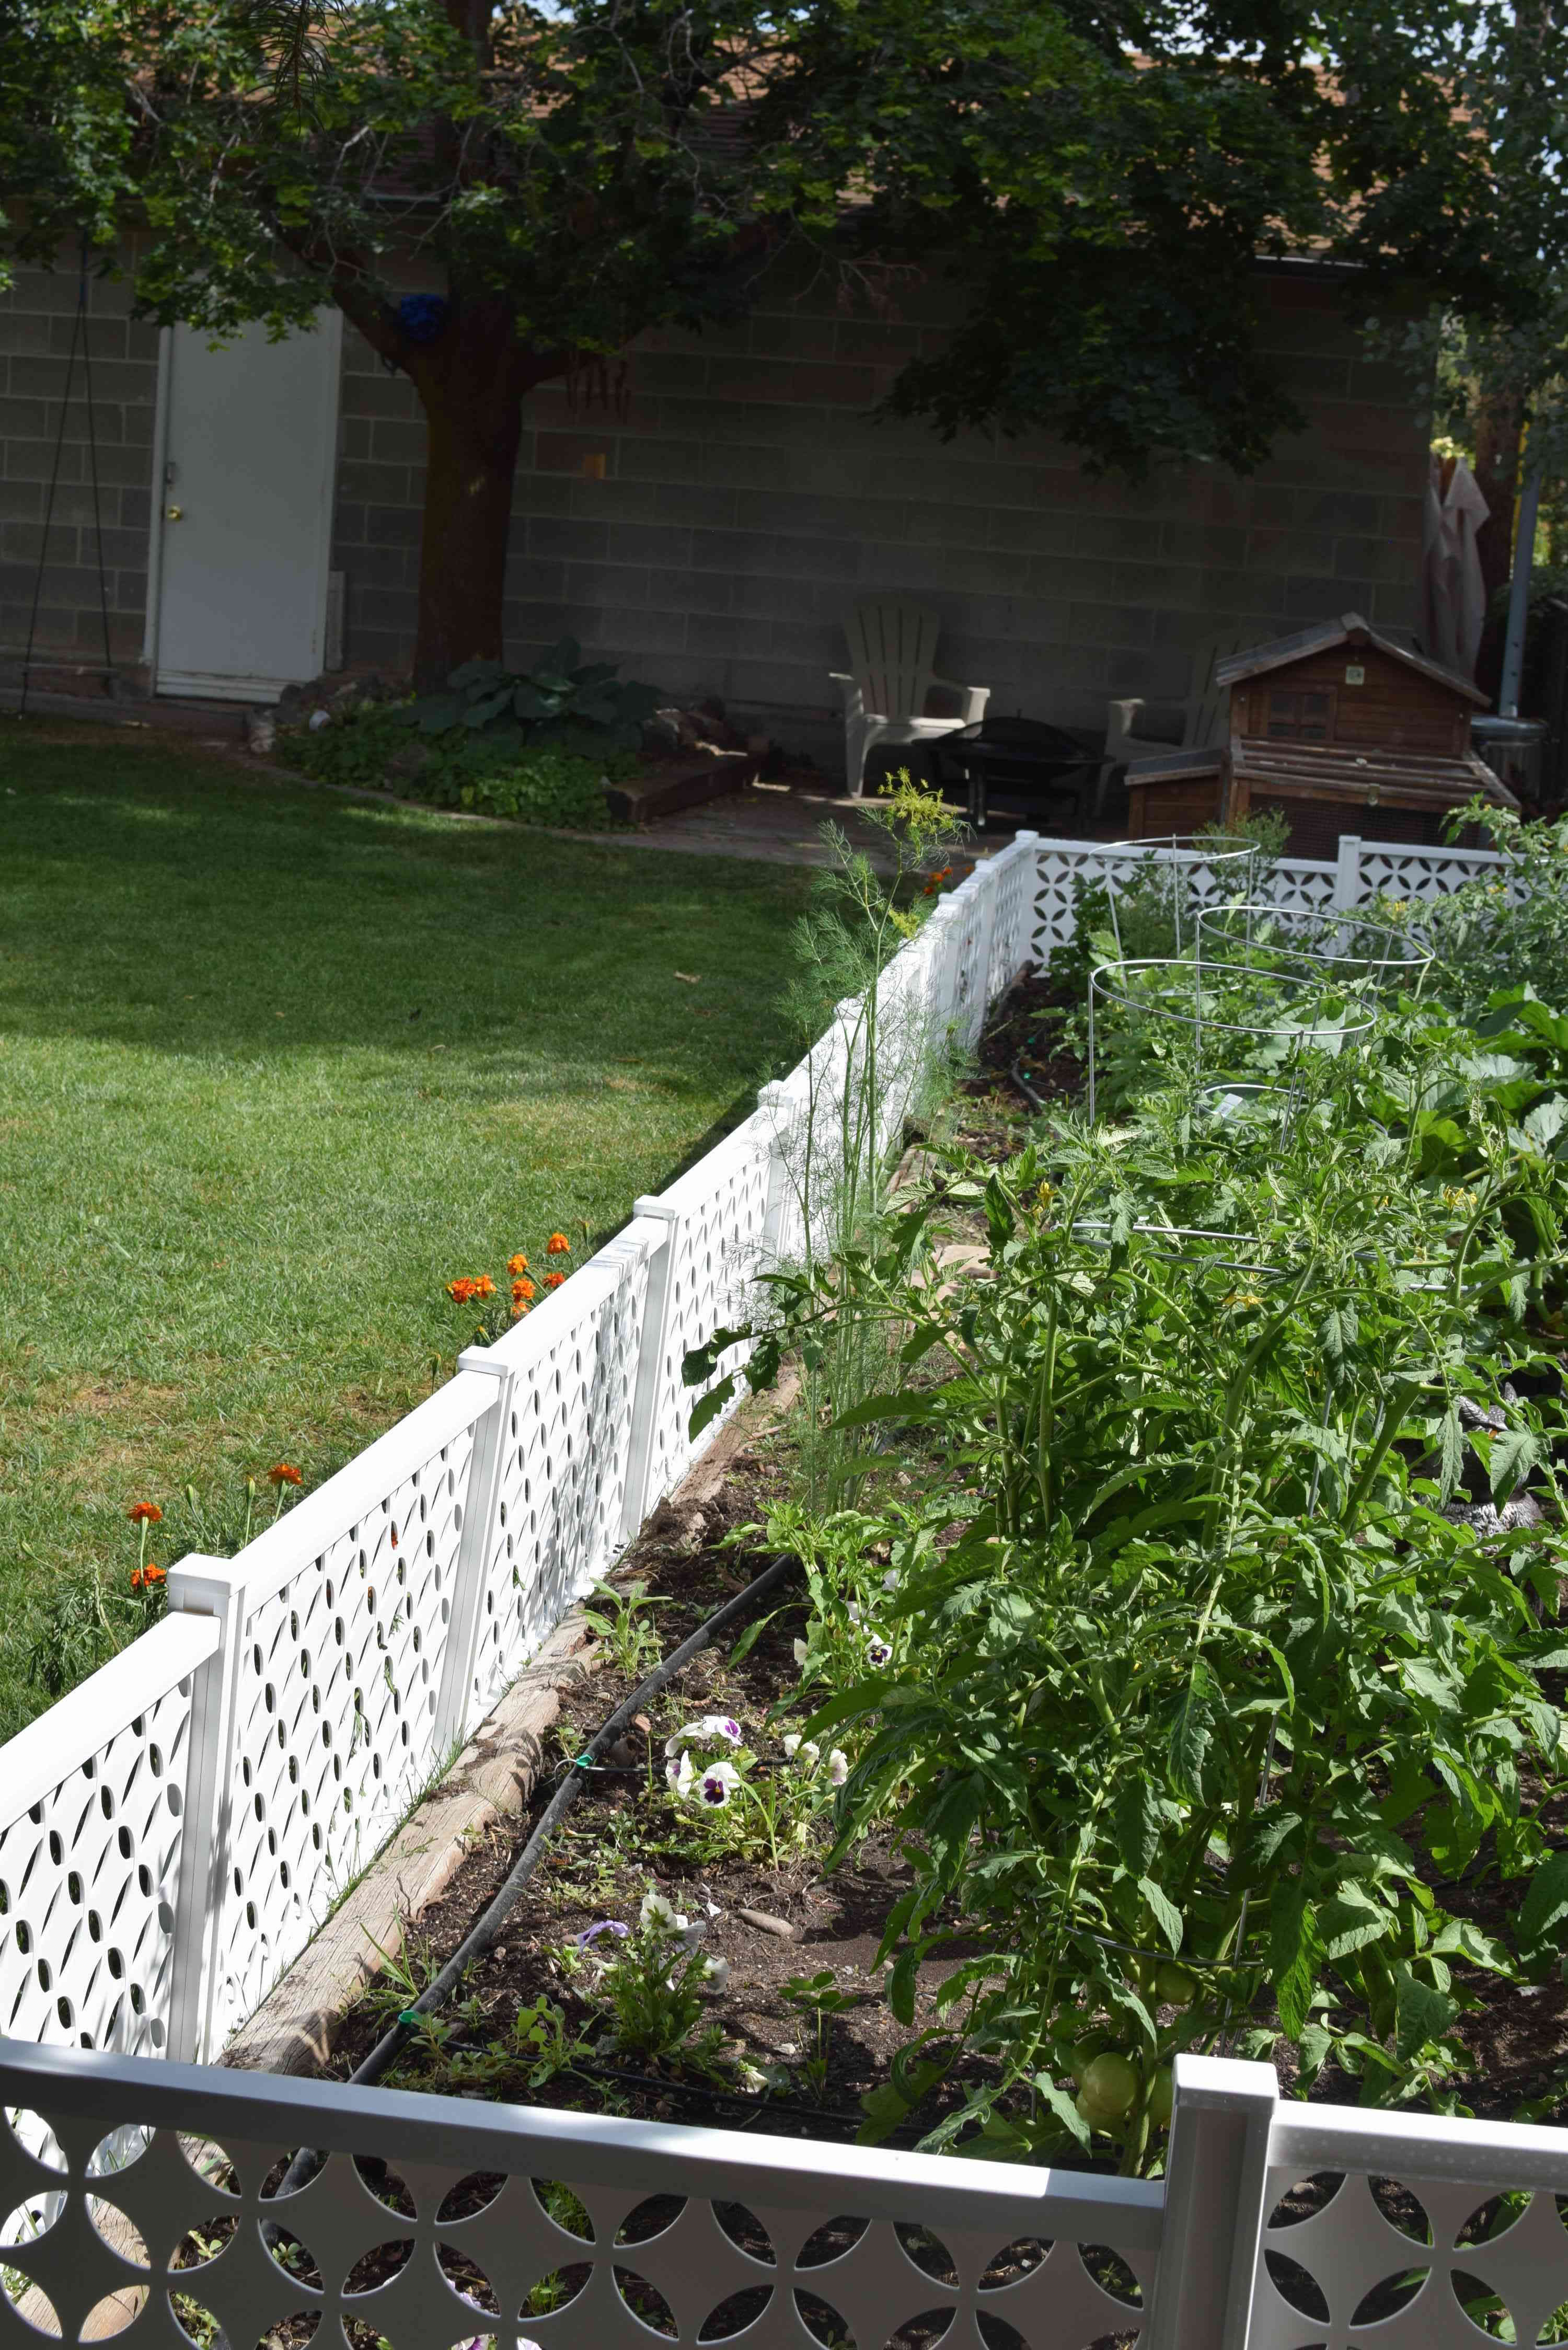 how to enclose a garden to protect from critters